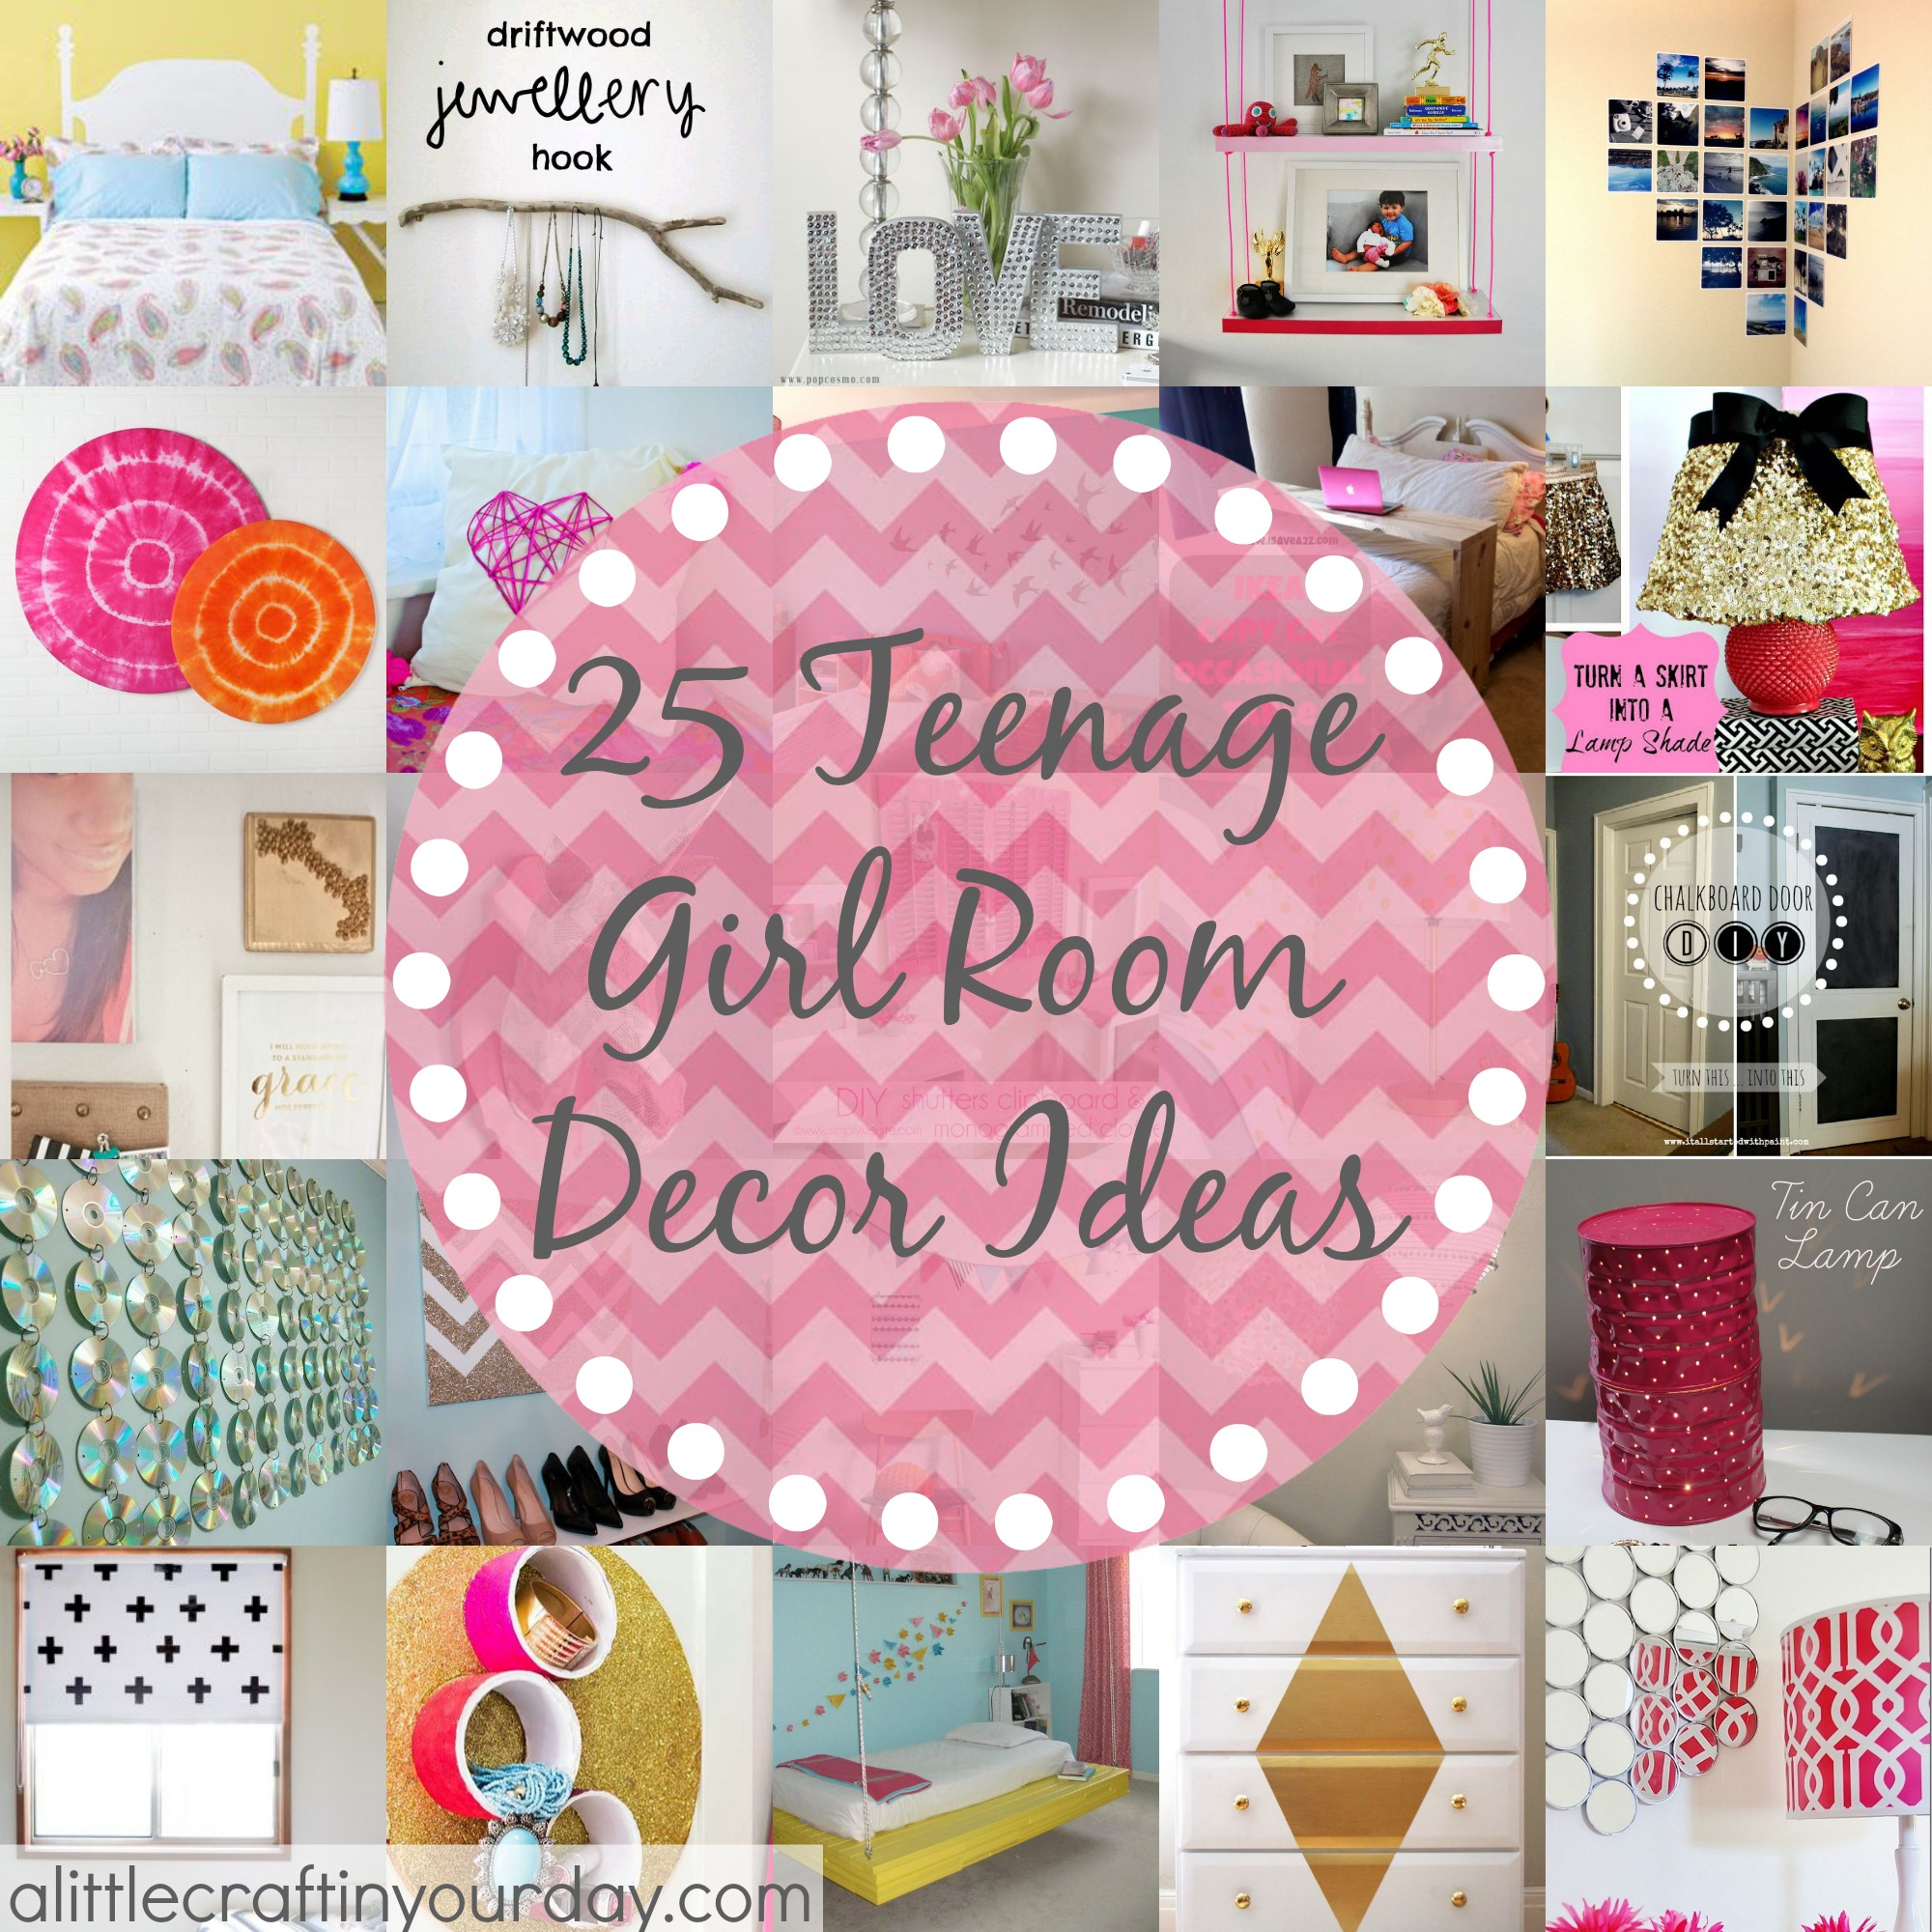 Interior Diy Teenage Bedroom Decorating Ideas 25 more teenage girl room decor ideas a little craft in your day 430 ideas